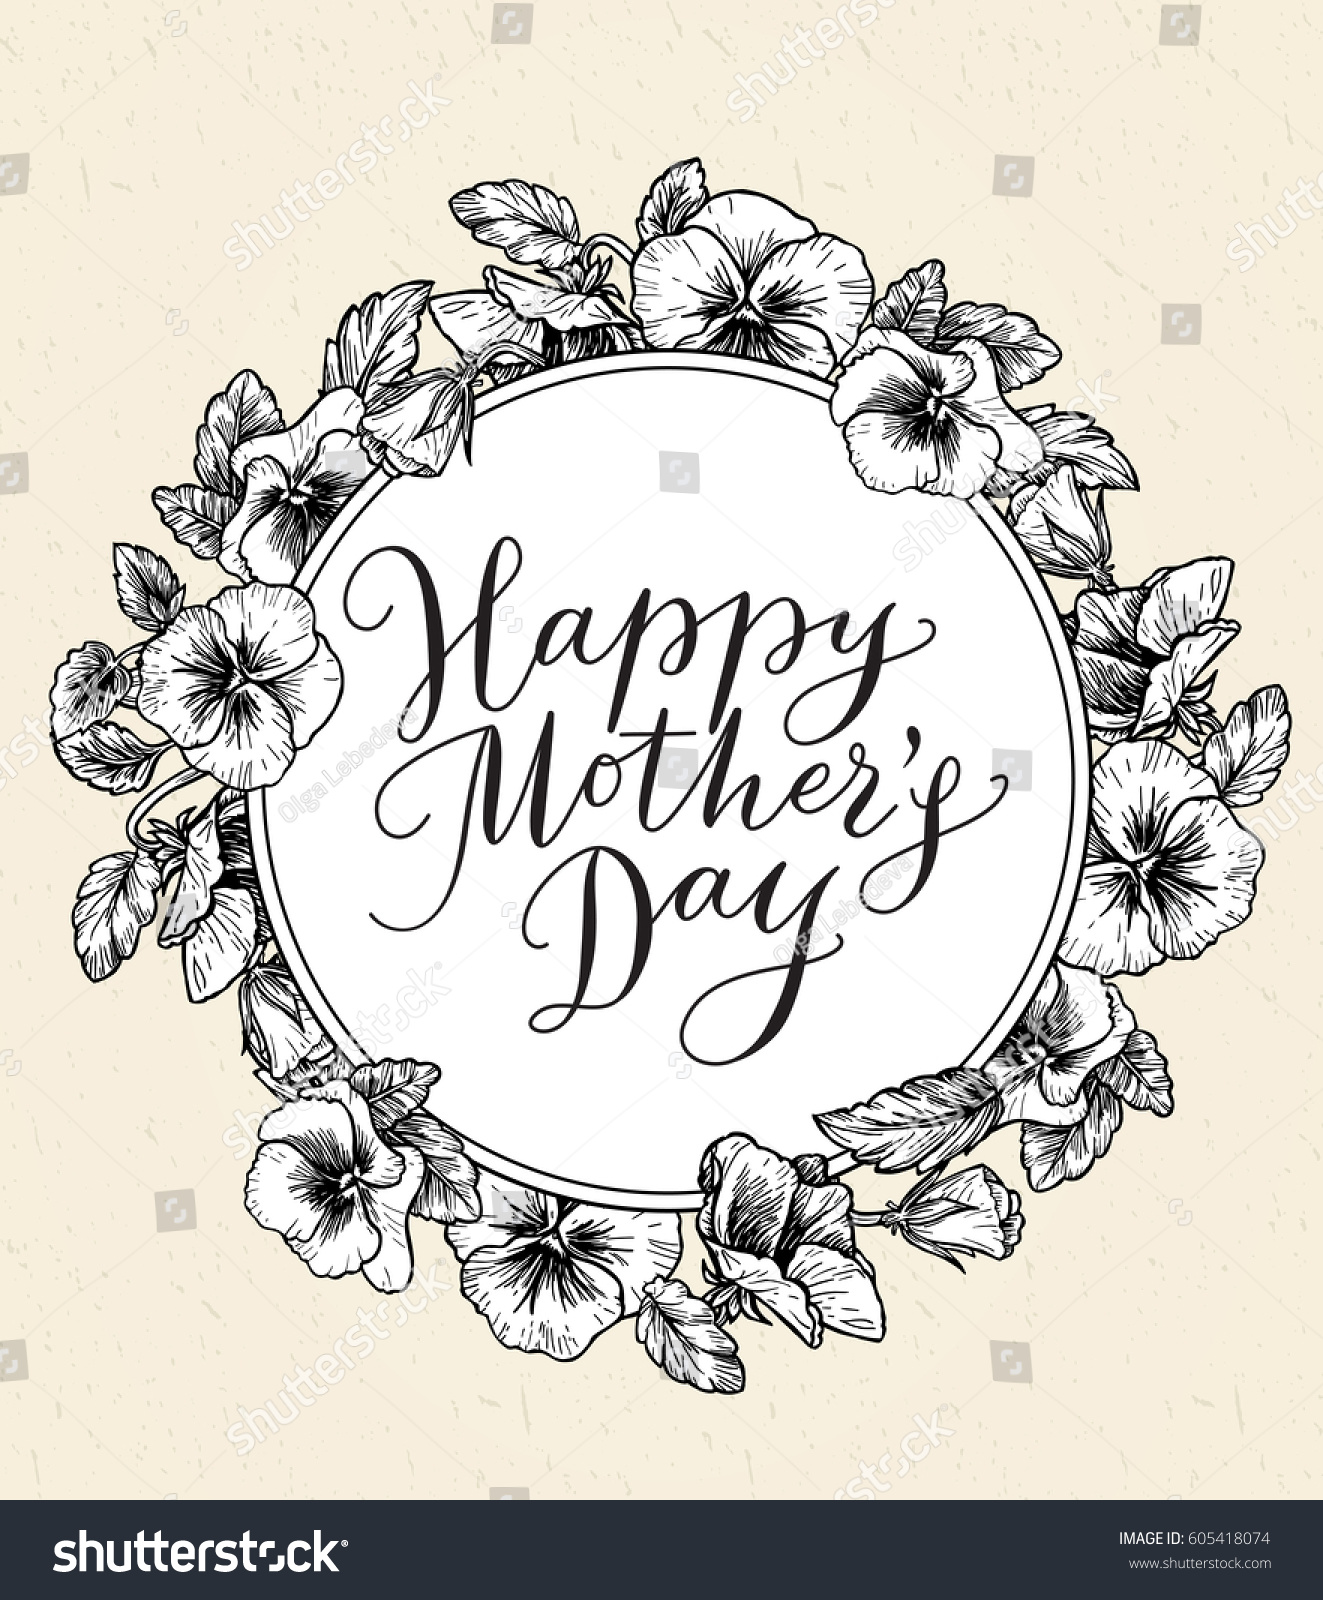 Happy mothers day card text frame stock vector